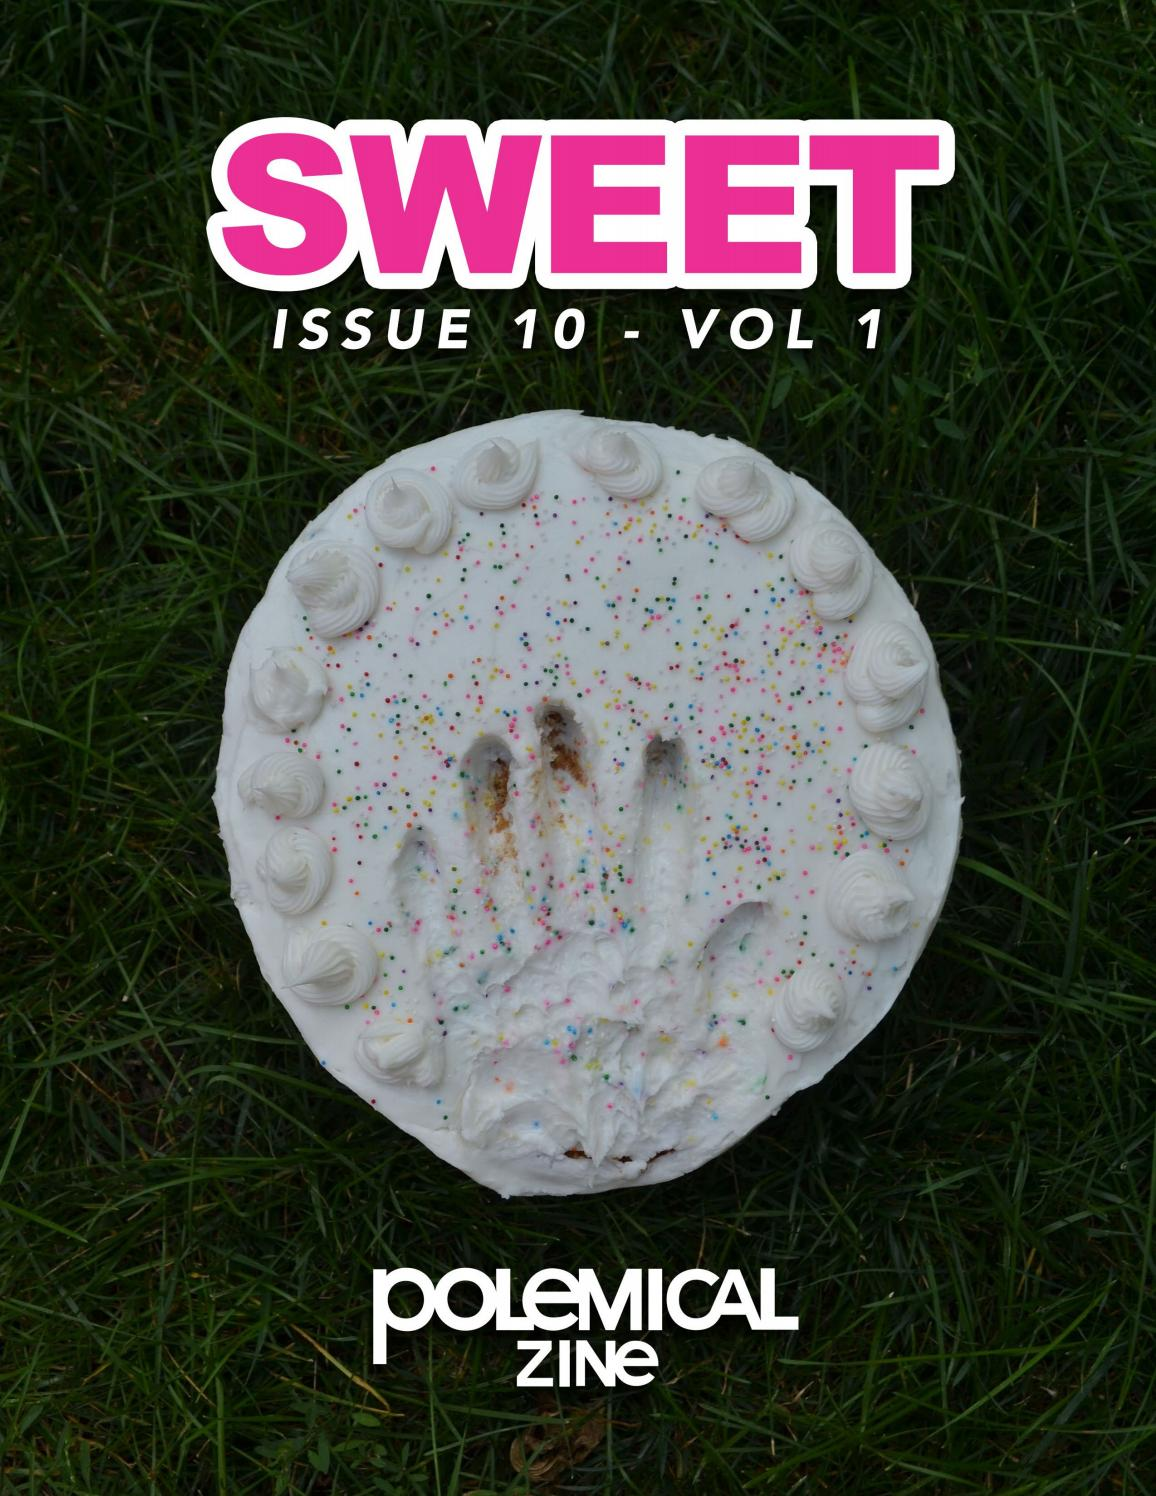 Anika Animal Crossing Porn issue 10: sweet - vol. 1polemical zine - issuu